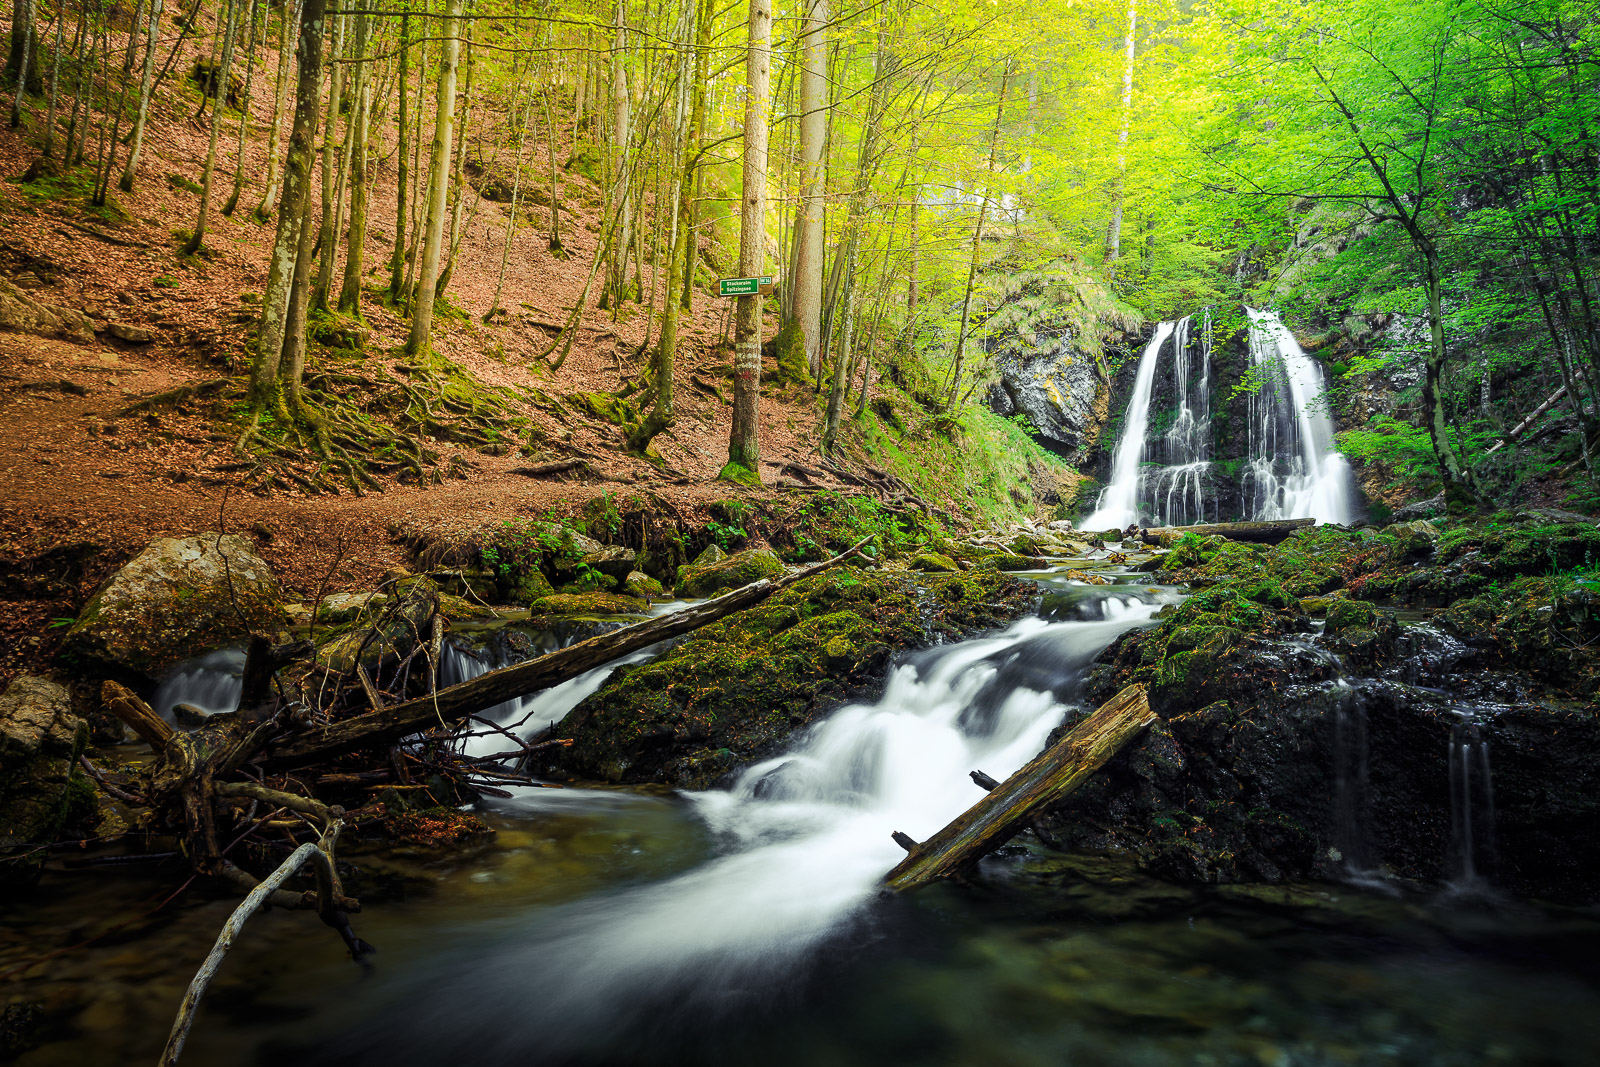 Waterfall Photography - Spring Time at Josefsthal